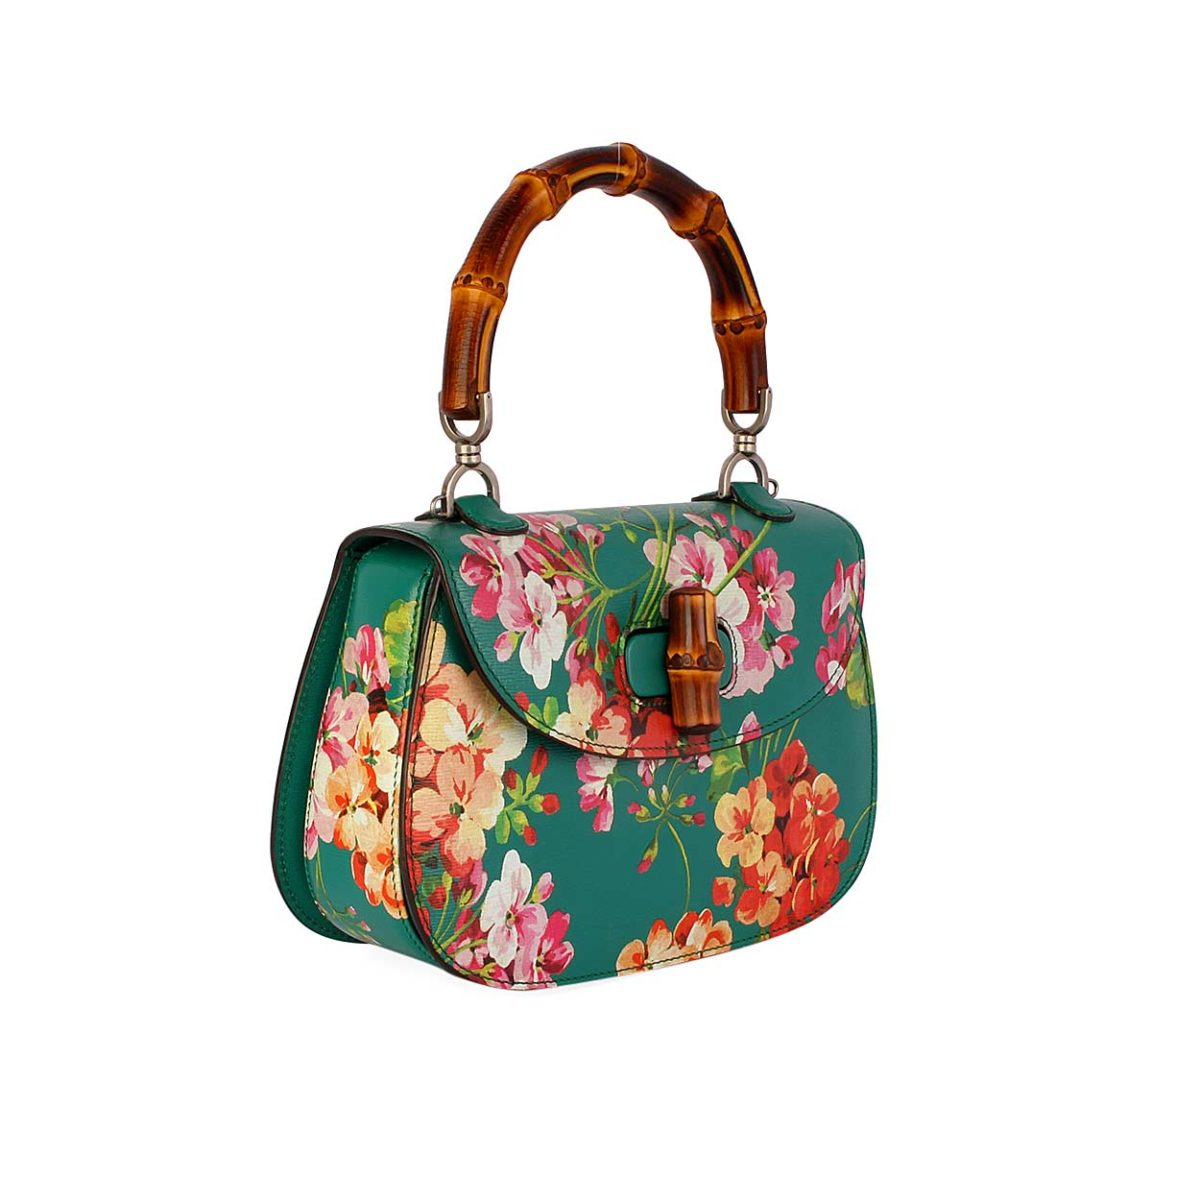 2019 year looks- Bamboo gucci classic blooms top handle bag